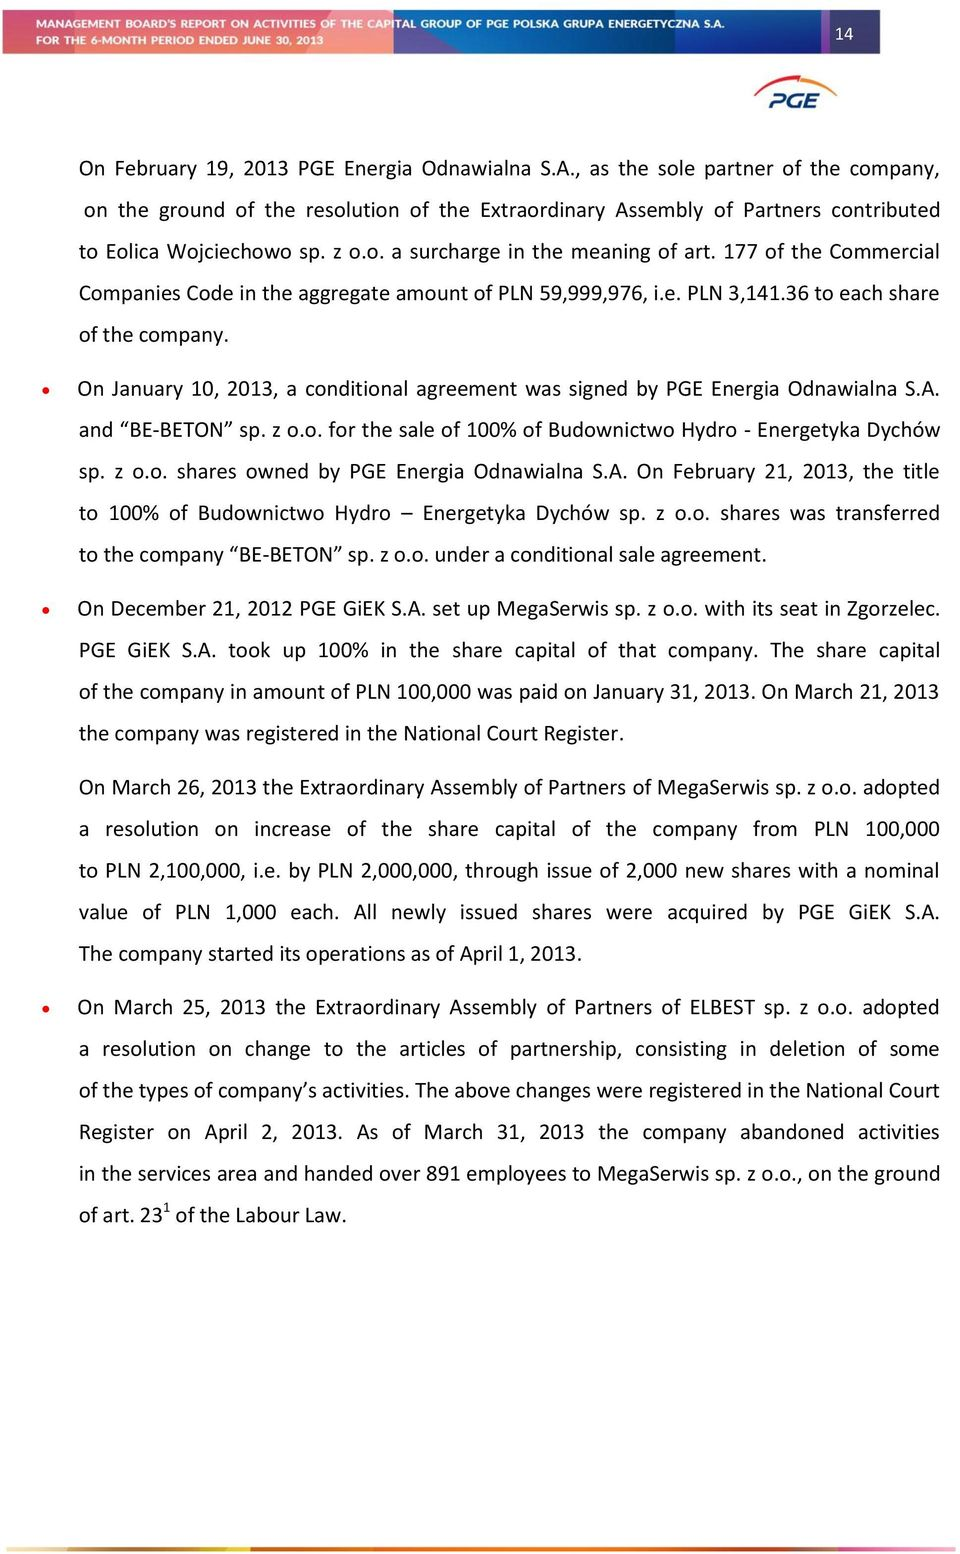 On January 10, 2013, a conditional agreement was signed by PGE Energia Odnawialna S.A. and BE-BETON sp. z o.o. for the sale of 100% of Budownictwo Hydro - Energetyka Dychów sp. z o.o. shares owned by PGE Energia Odnawialna S.